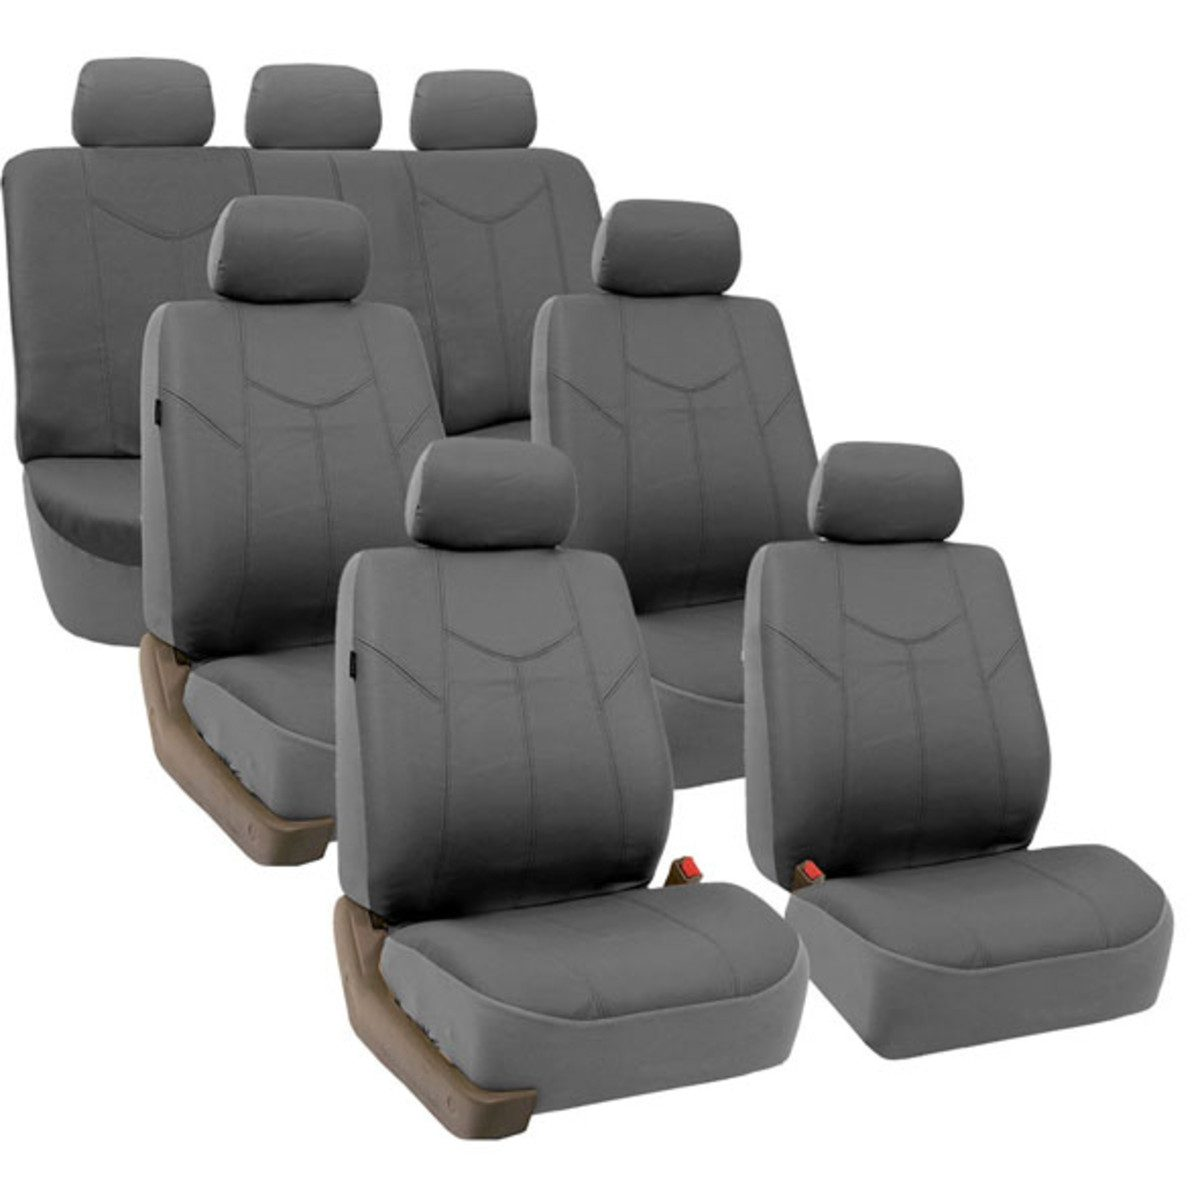 88-PU009217GRAY seat cover 1